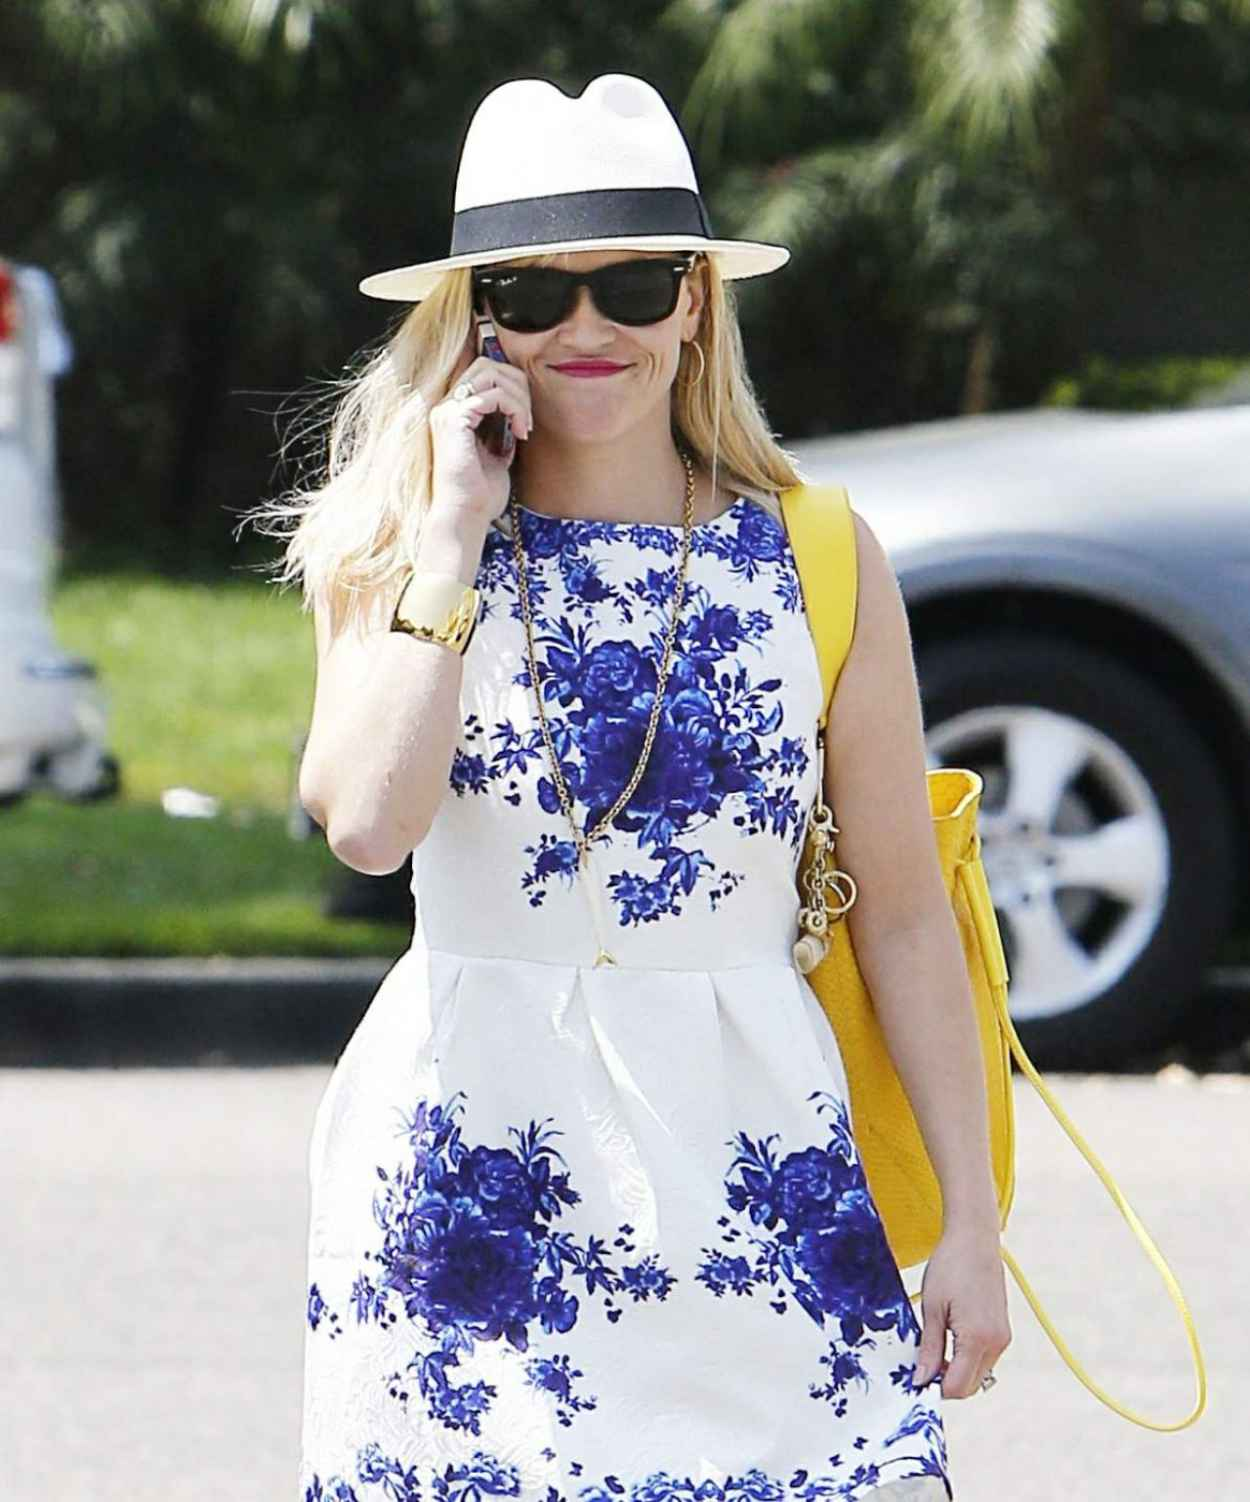 Reese Witherspoon in Summer Dress - Visiting a Salon in Los Angeles - August 2015-1